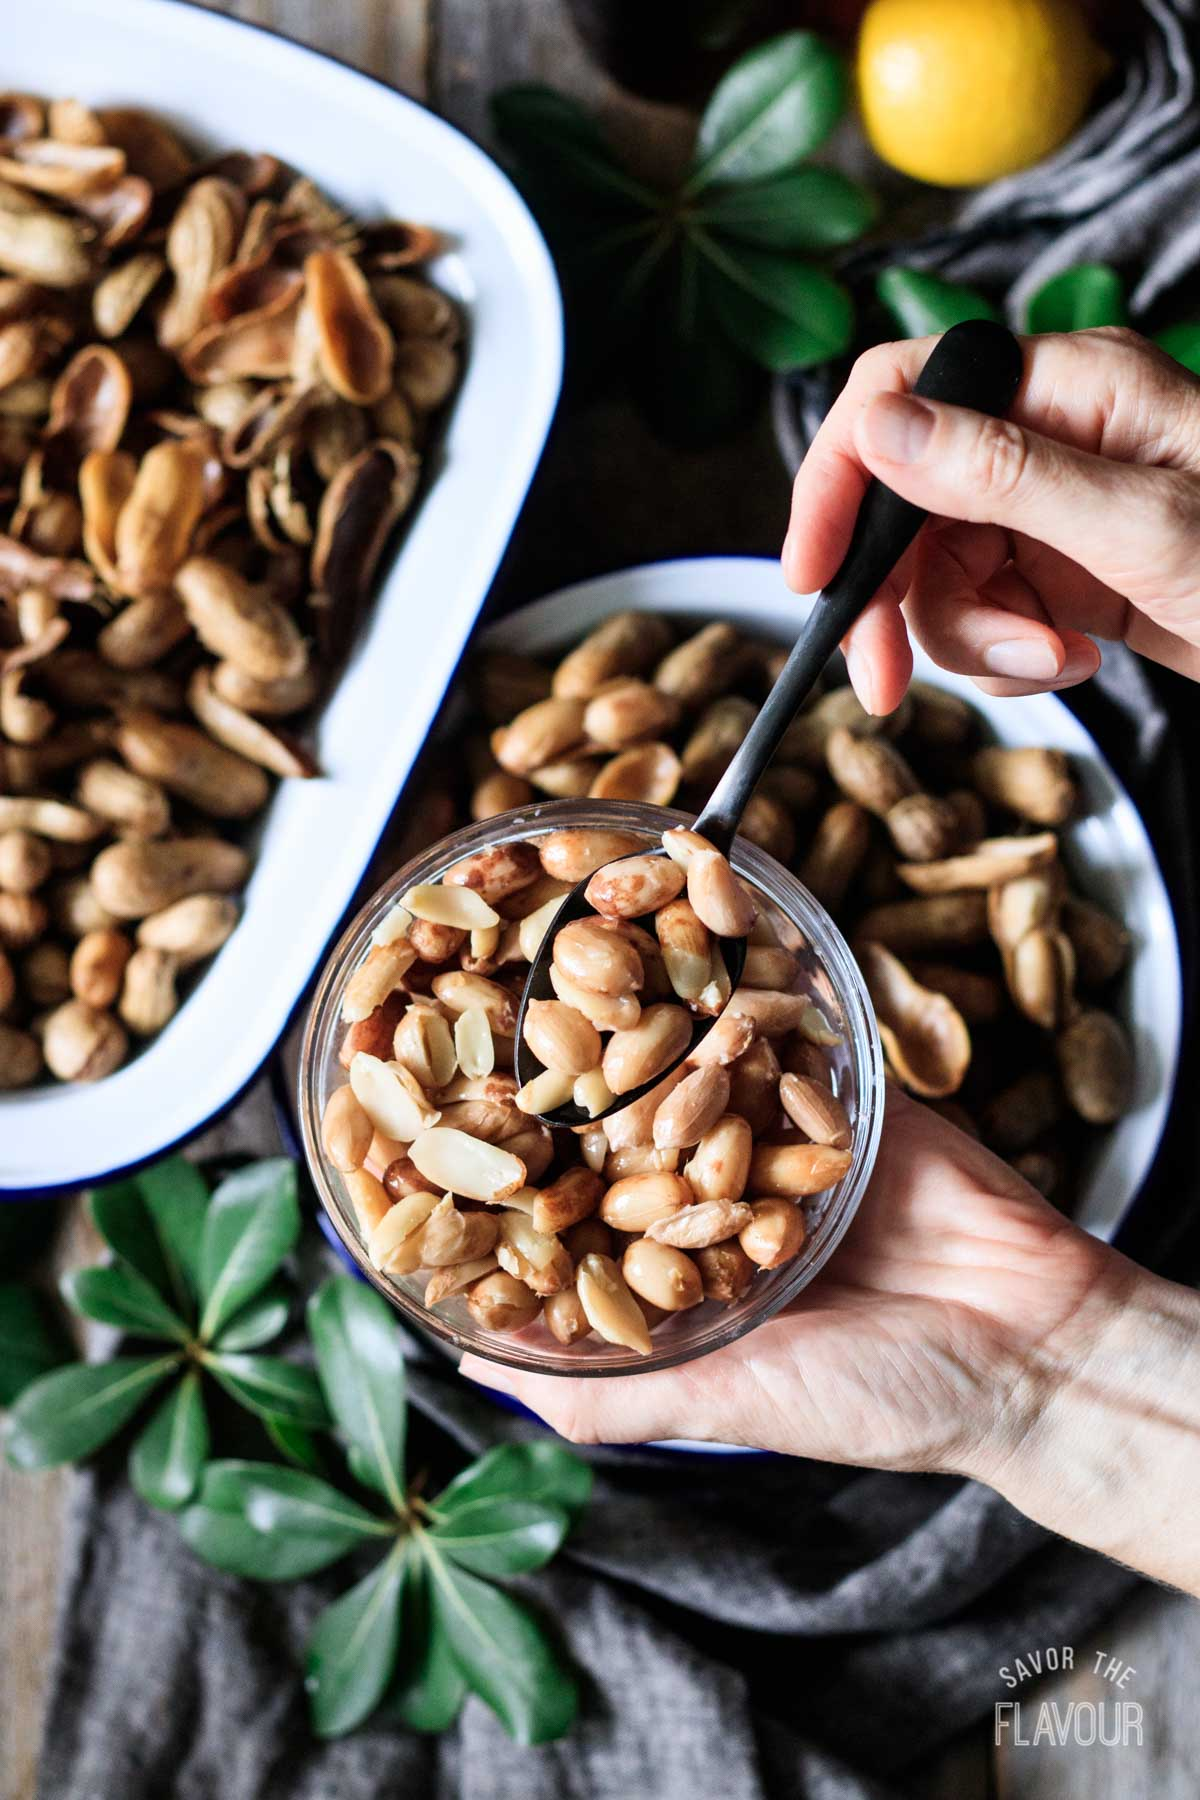 person holding a bowl and spoon of shelled boiled peanuts